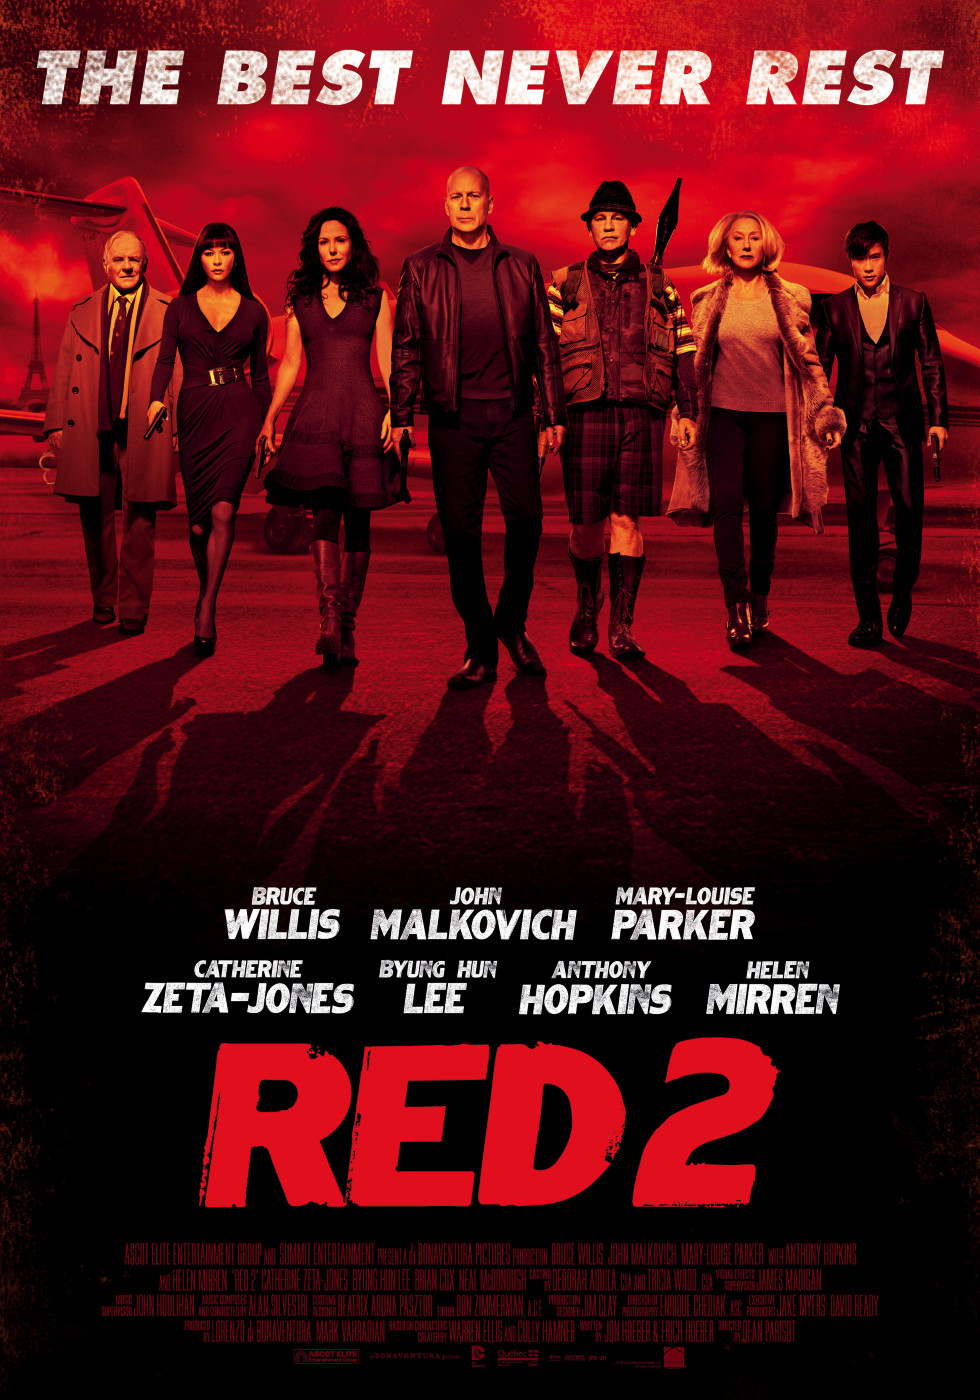 Red 2 Movie Poster Red 2 (2013) | Amazing...